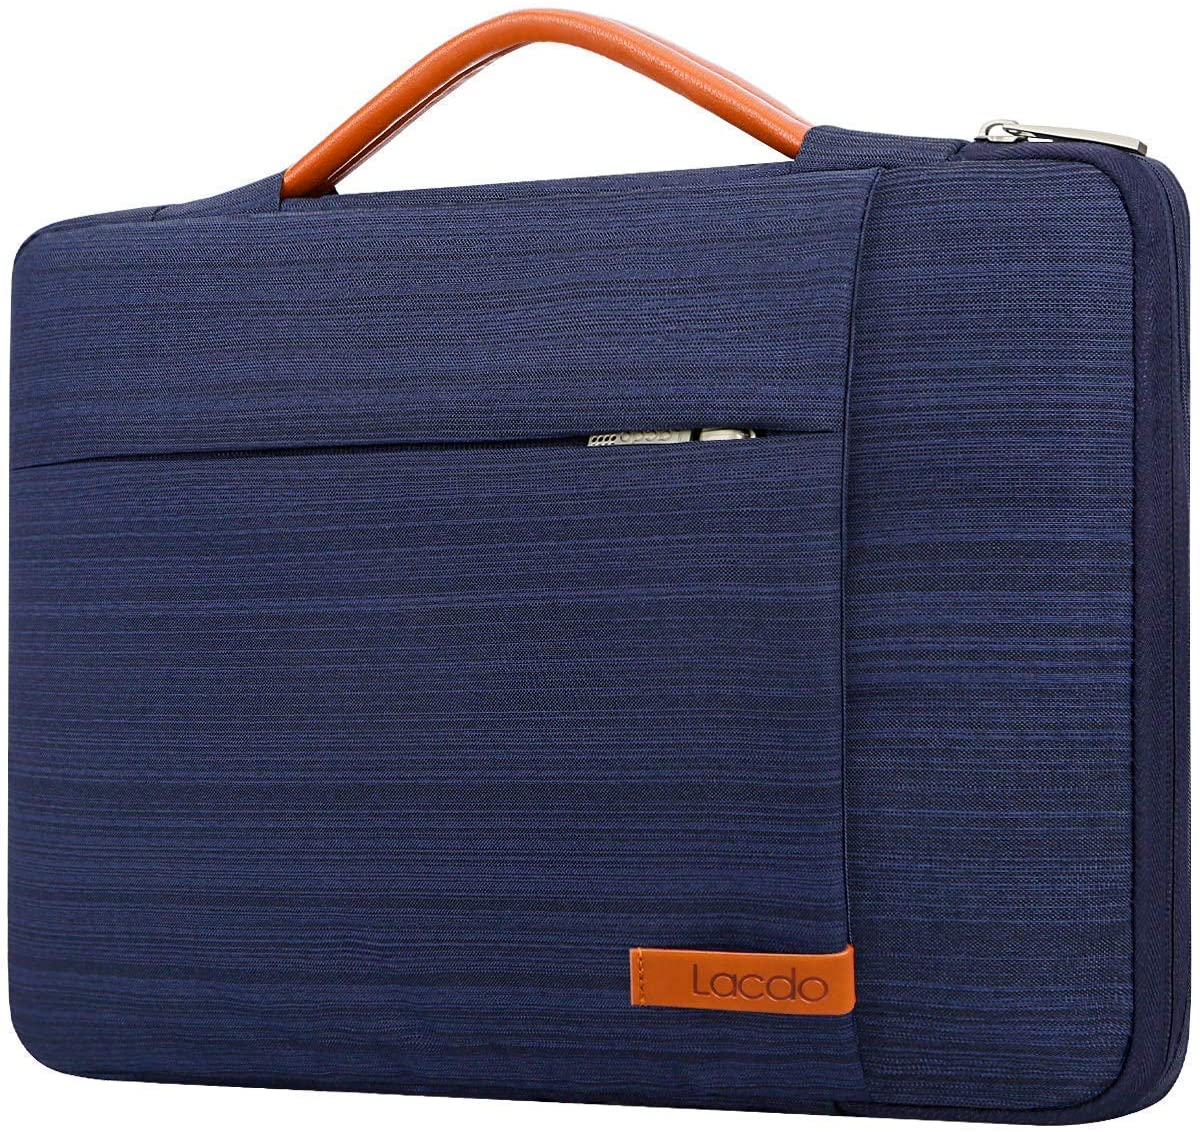 Lacdo 15.6 inch Protective Laptop Sleeve